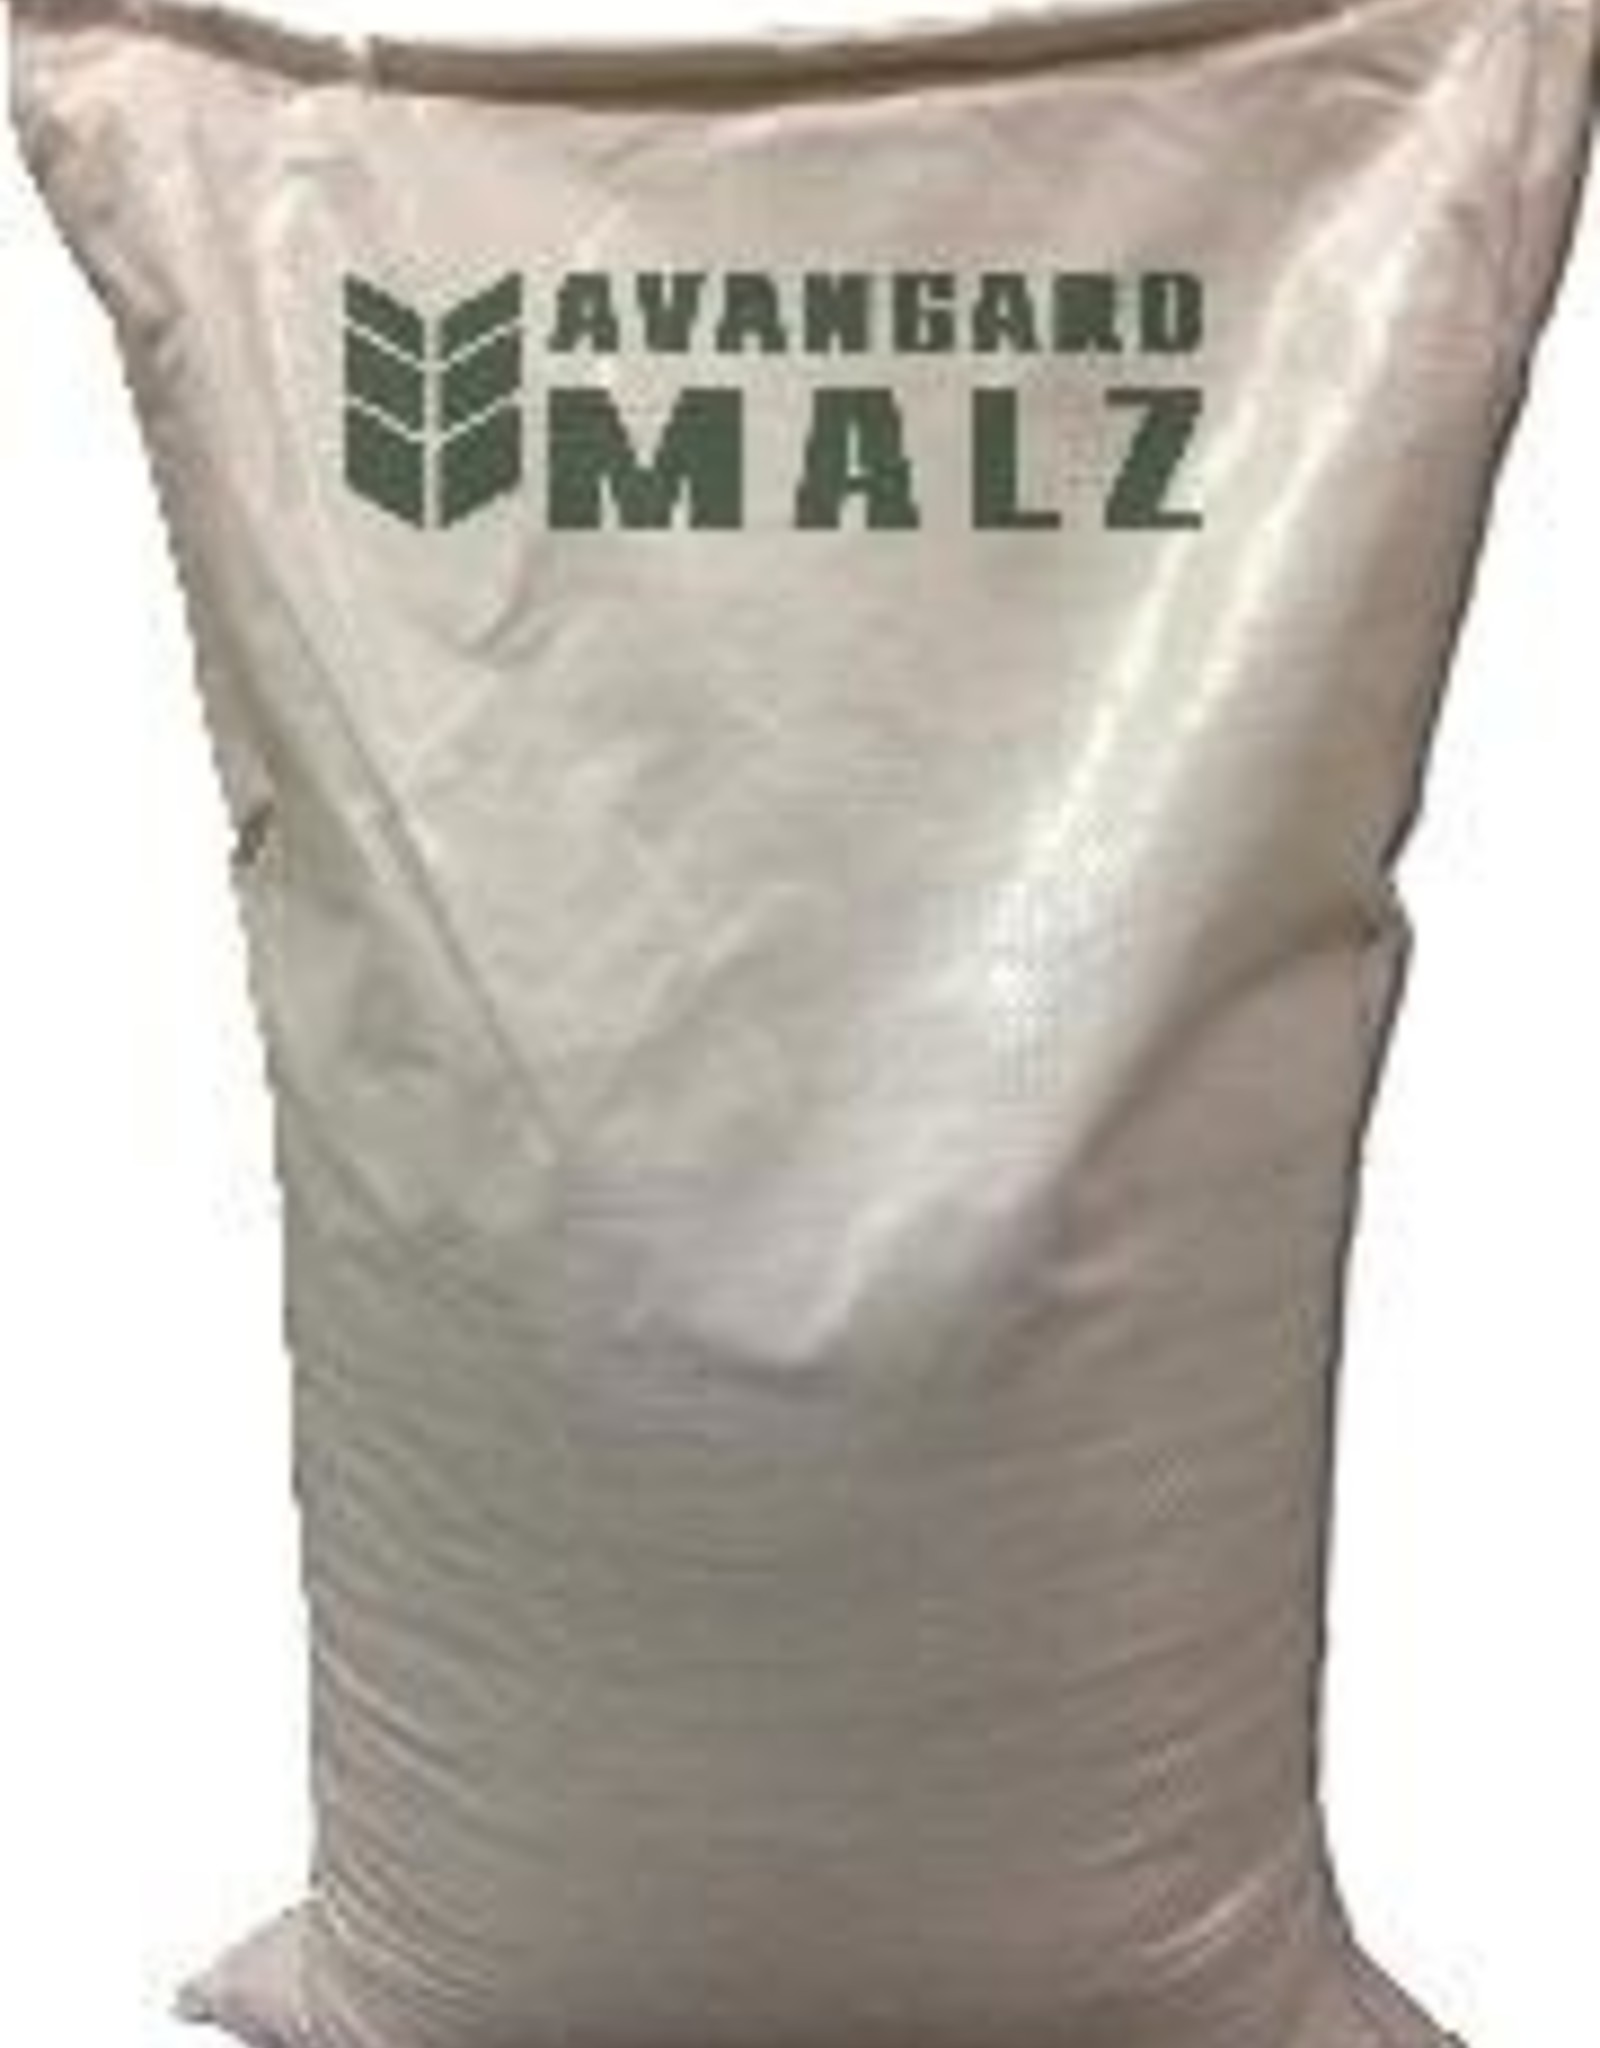 AVANGARD Specialty malt for increasing color and sweetness